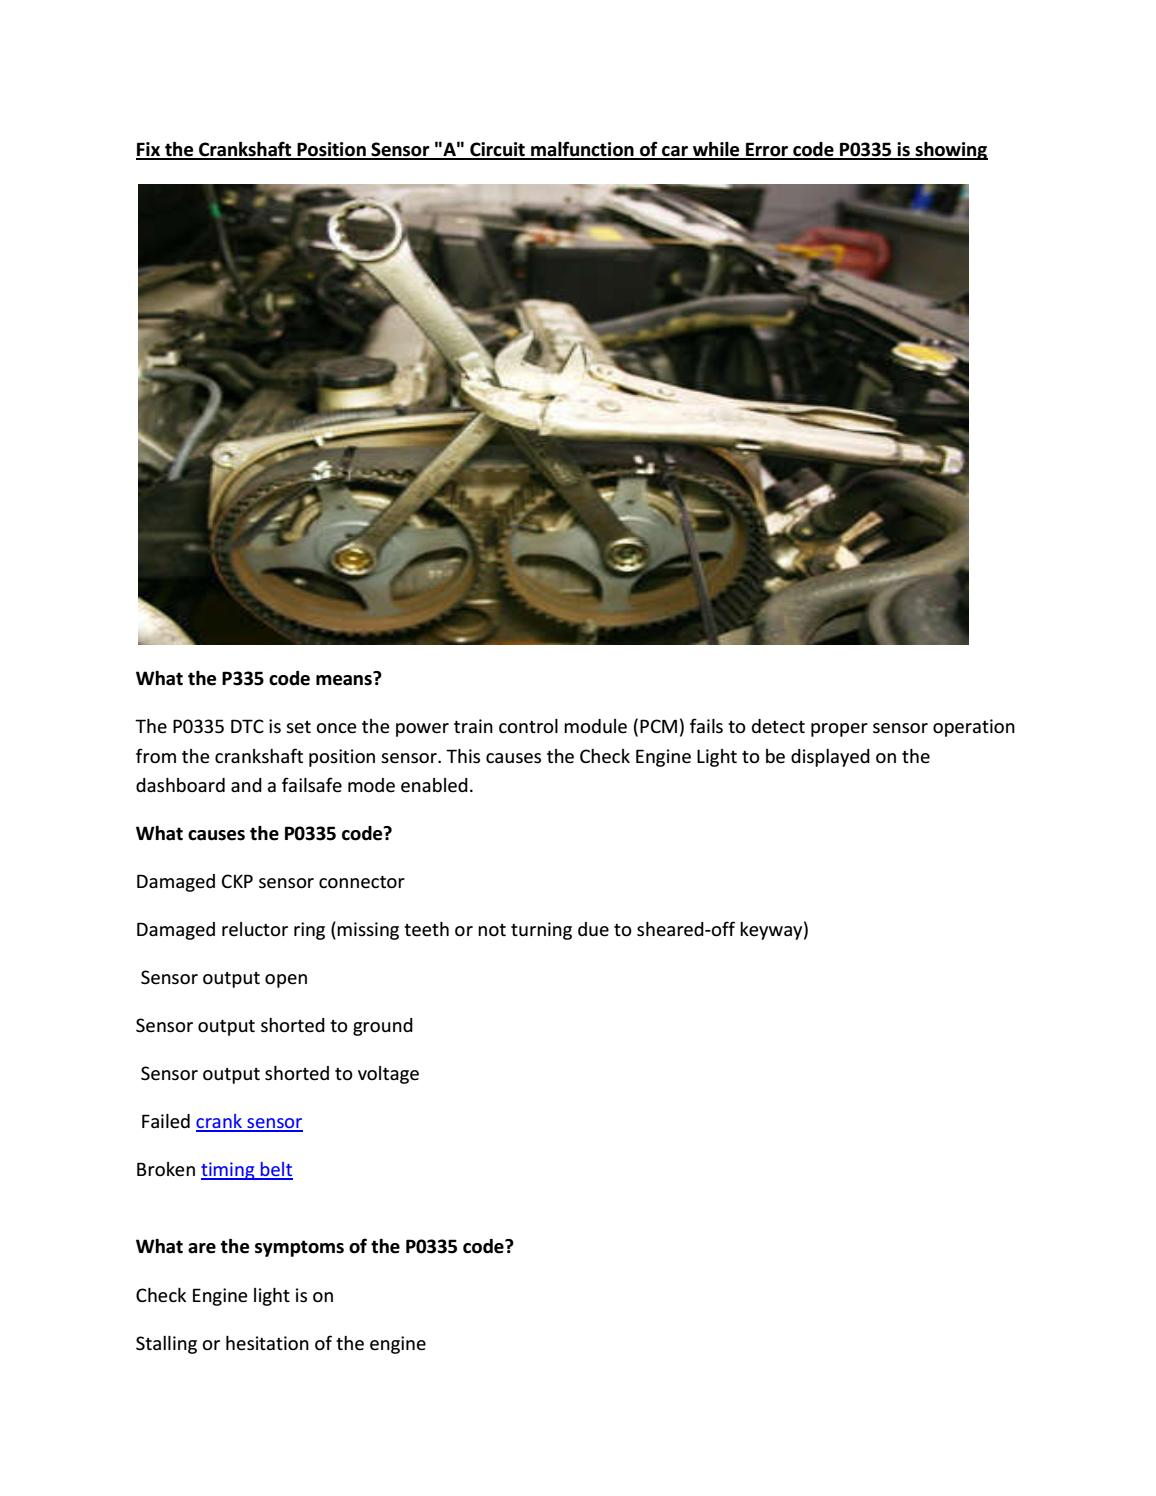 Partsavatar Car Parts Toronto Fix The Crankshaft Position Sensor A Timing Belt Circuit Malfunction Of By Tr Issuu